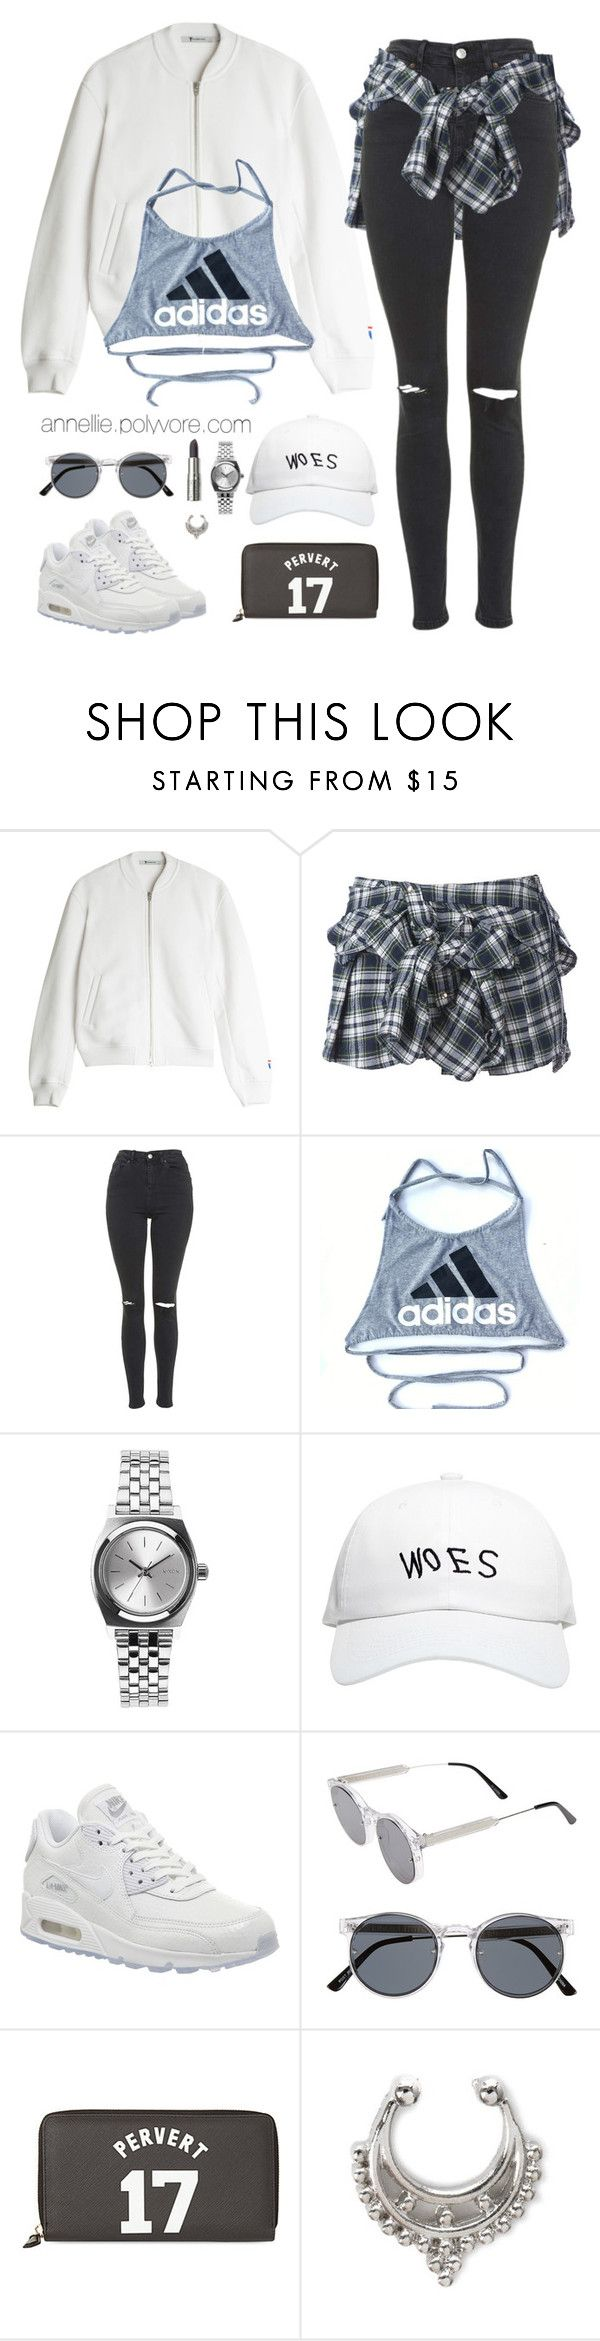 """""""Sporty 17"""" by annellie ❤ liked on Polyvore featuring T By Alexander Wang, Faith Connexion, Topshop, adidas, Nixon, October's Very Own, NIKE, Spitfire, Givenchy and women's clothing"""